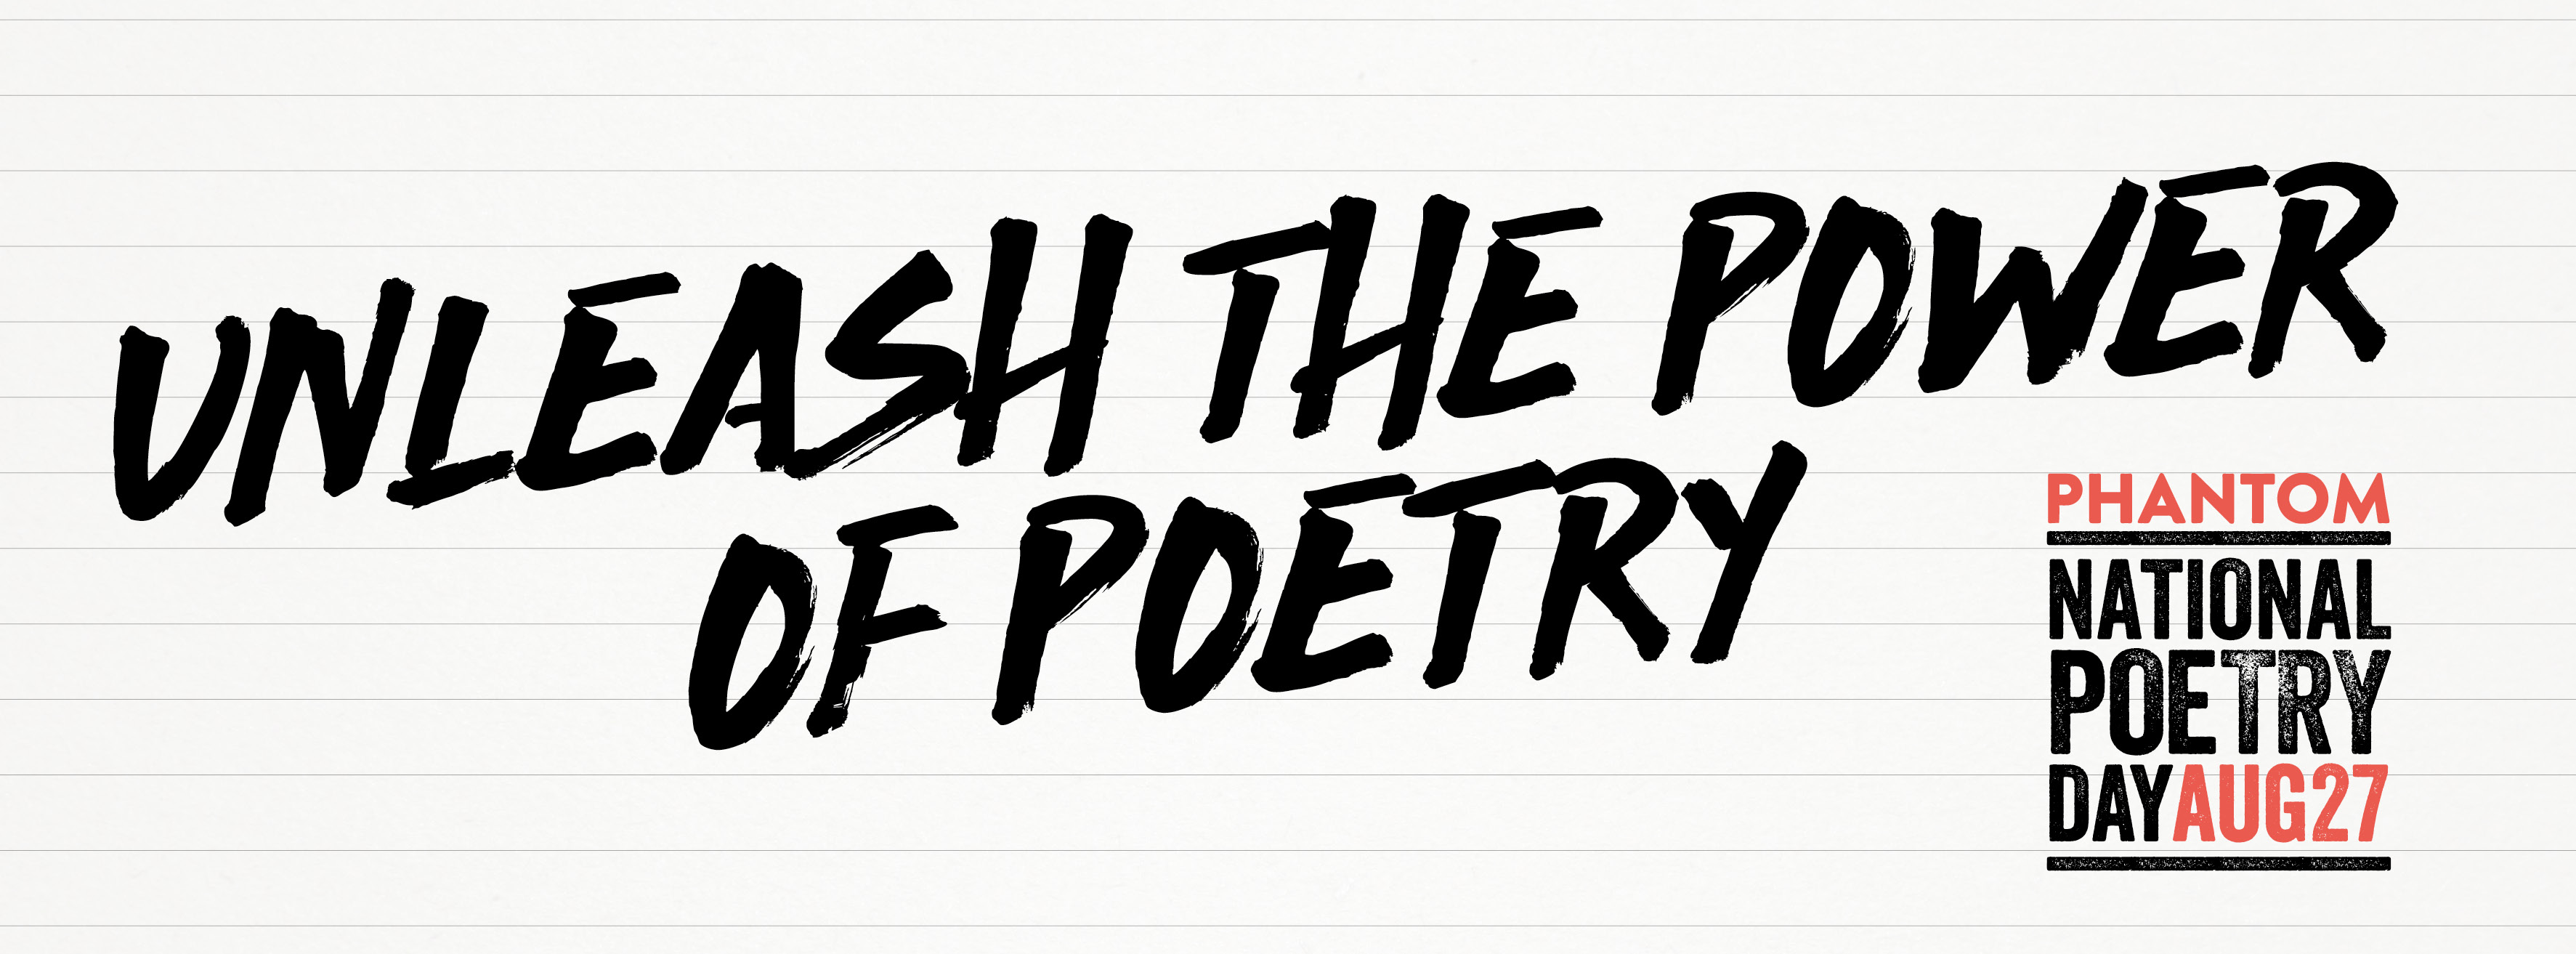 Unleash the power of poetry